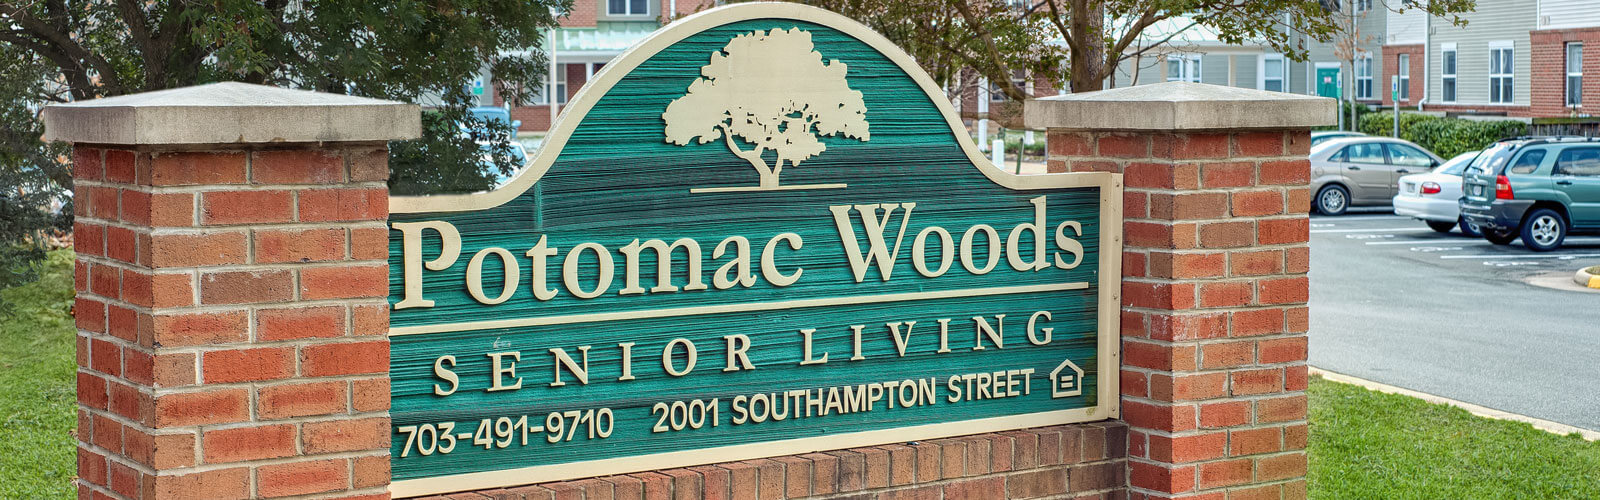 Potomac Woods Entrance Sign